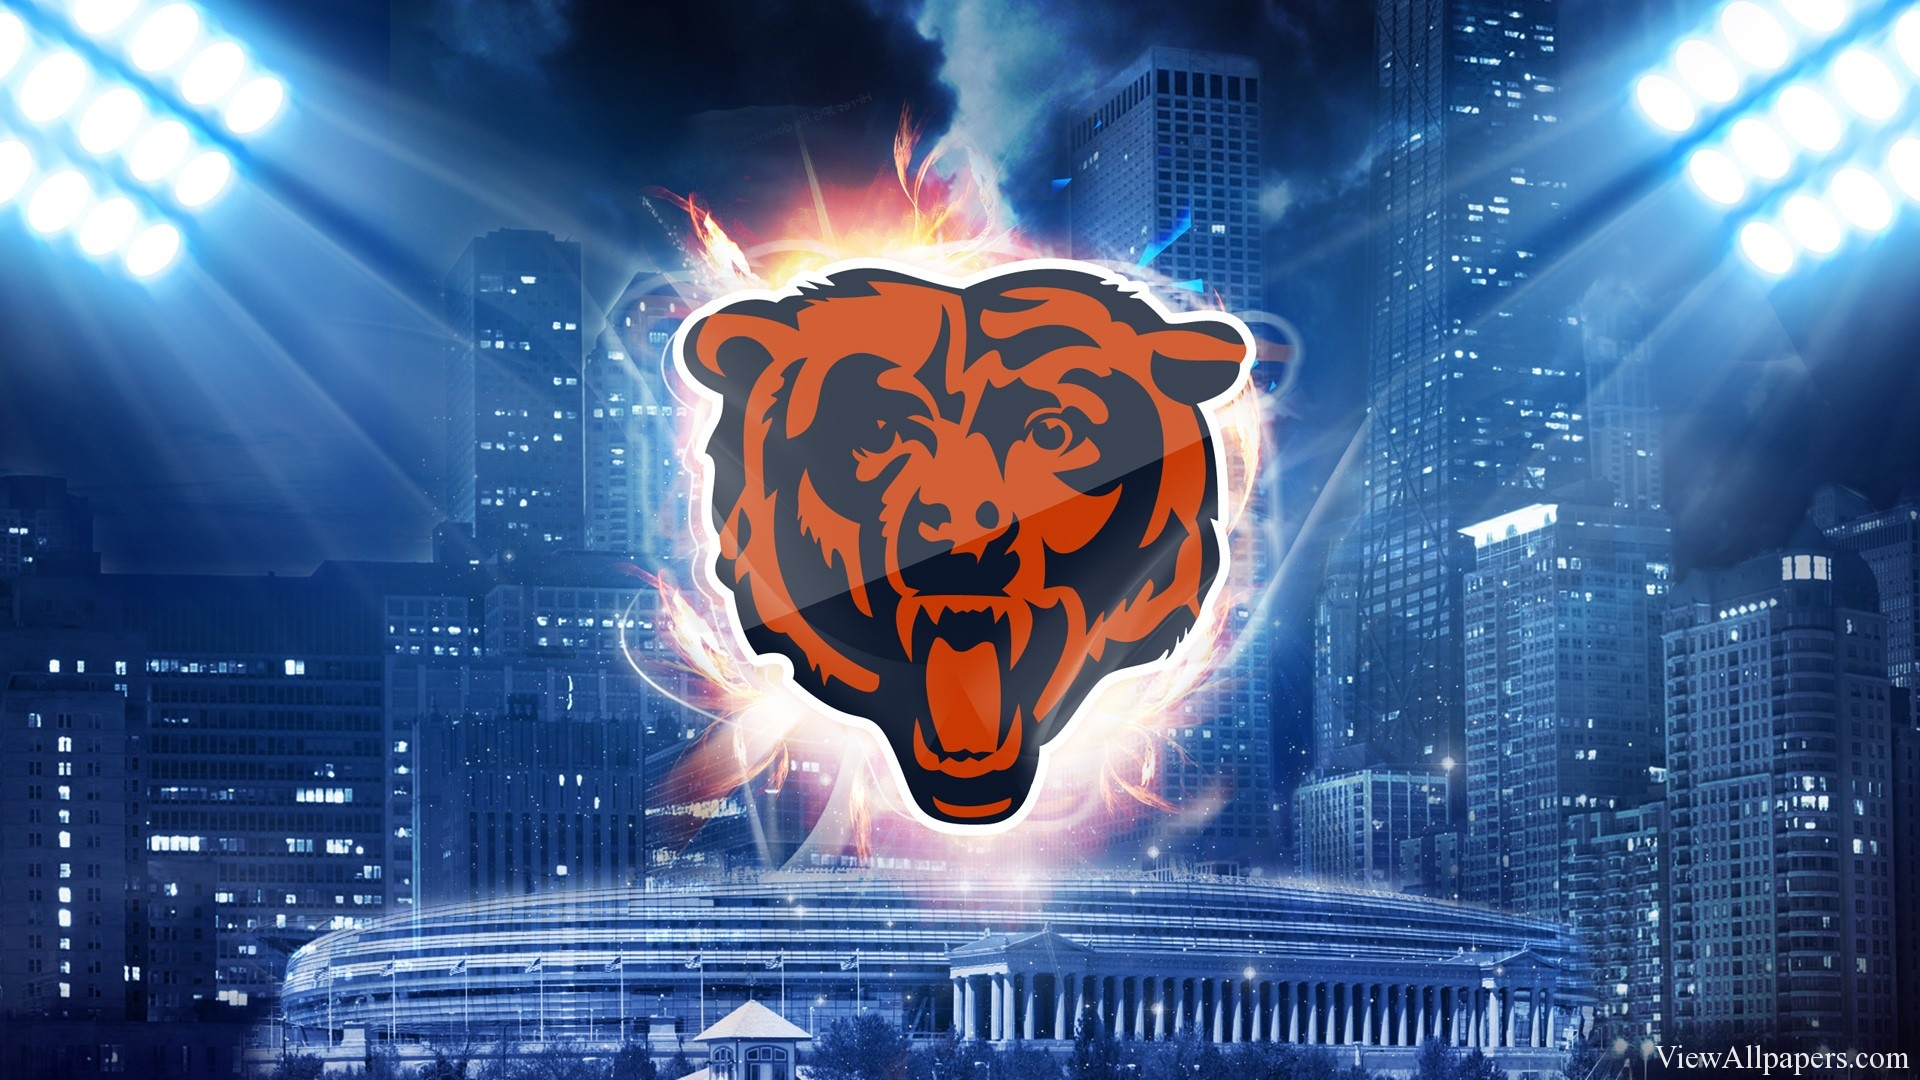 free chicago bears wallpaper downloads - wallpapersafari